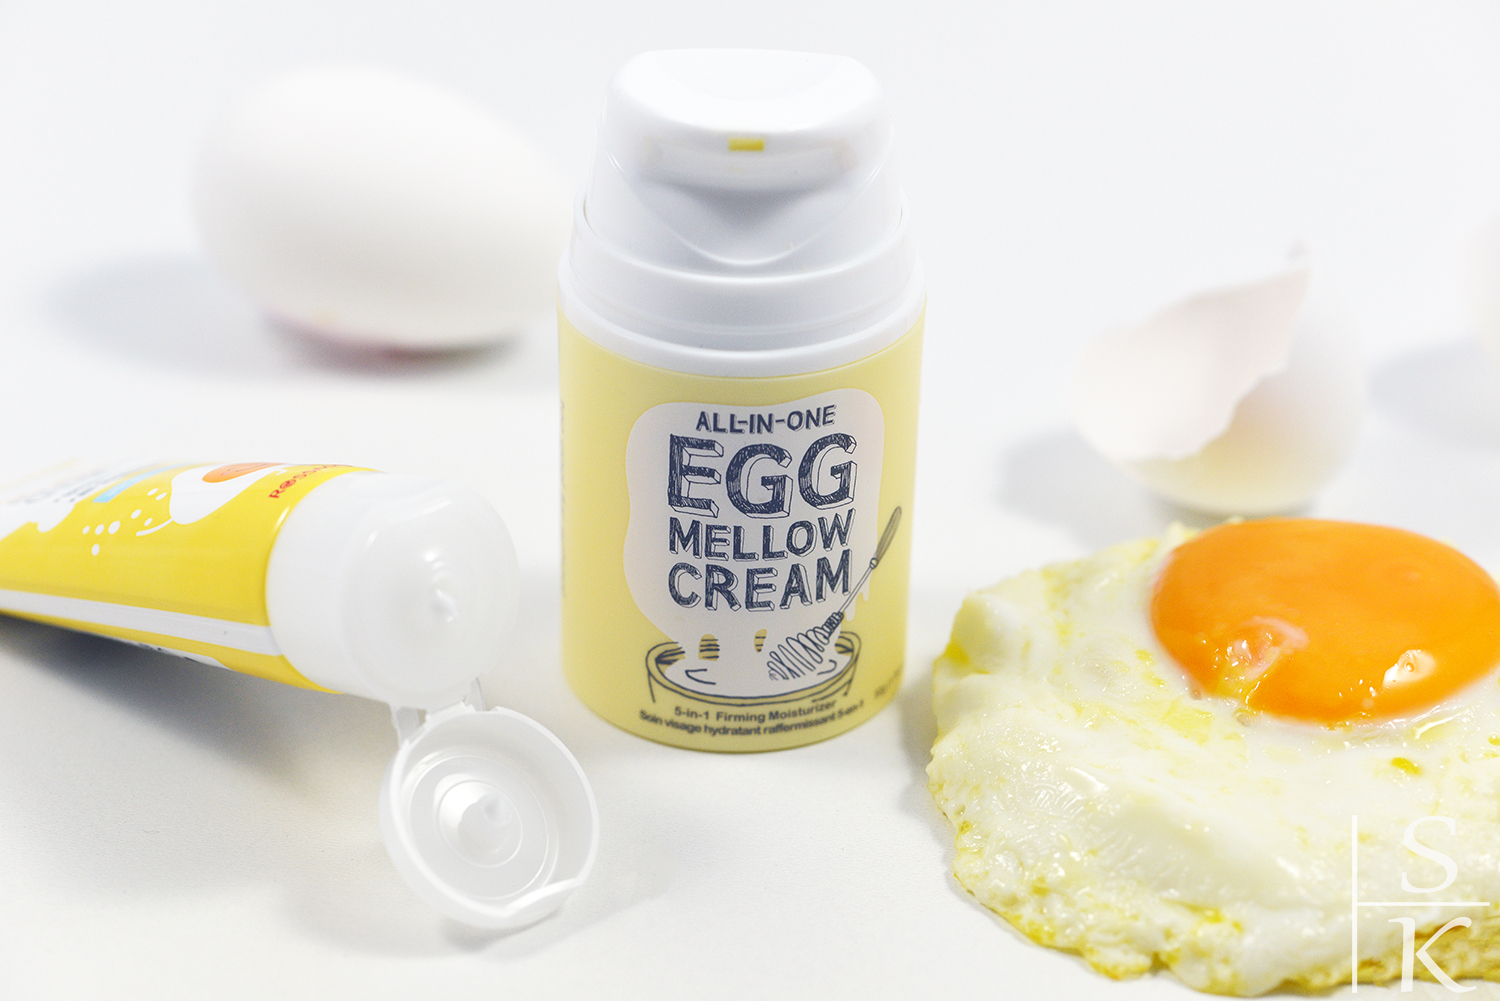 Too Cool For School Egg Mellow Cream vs. Isana Young Egg White Feuchtigkeitscreme Review Horizont-Blog